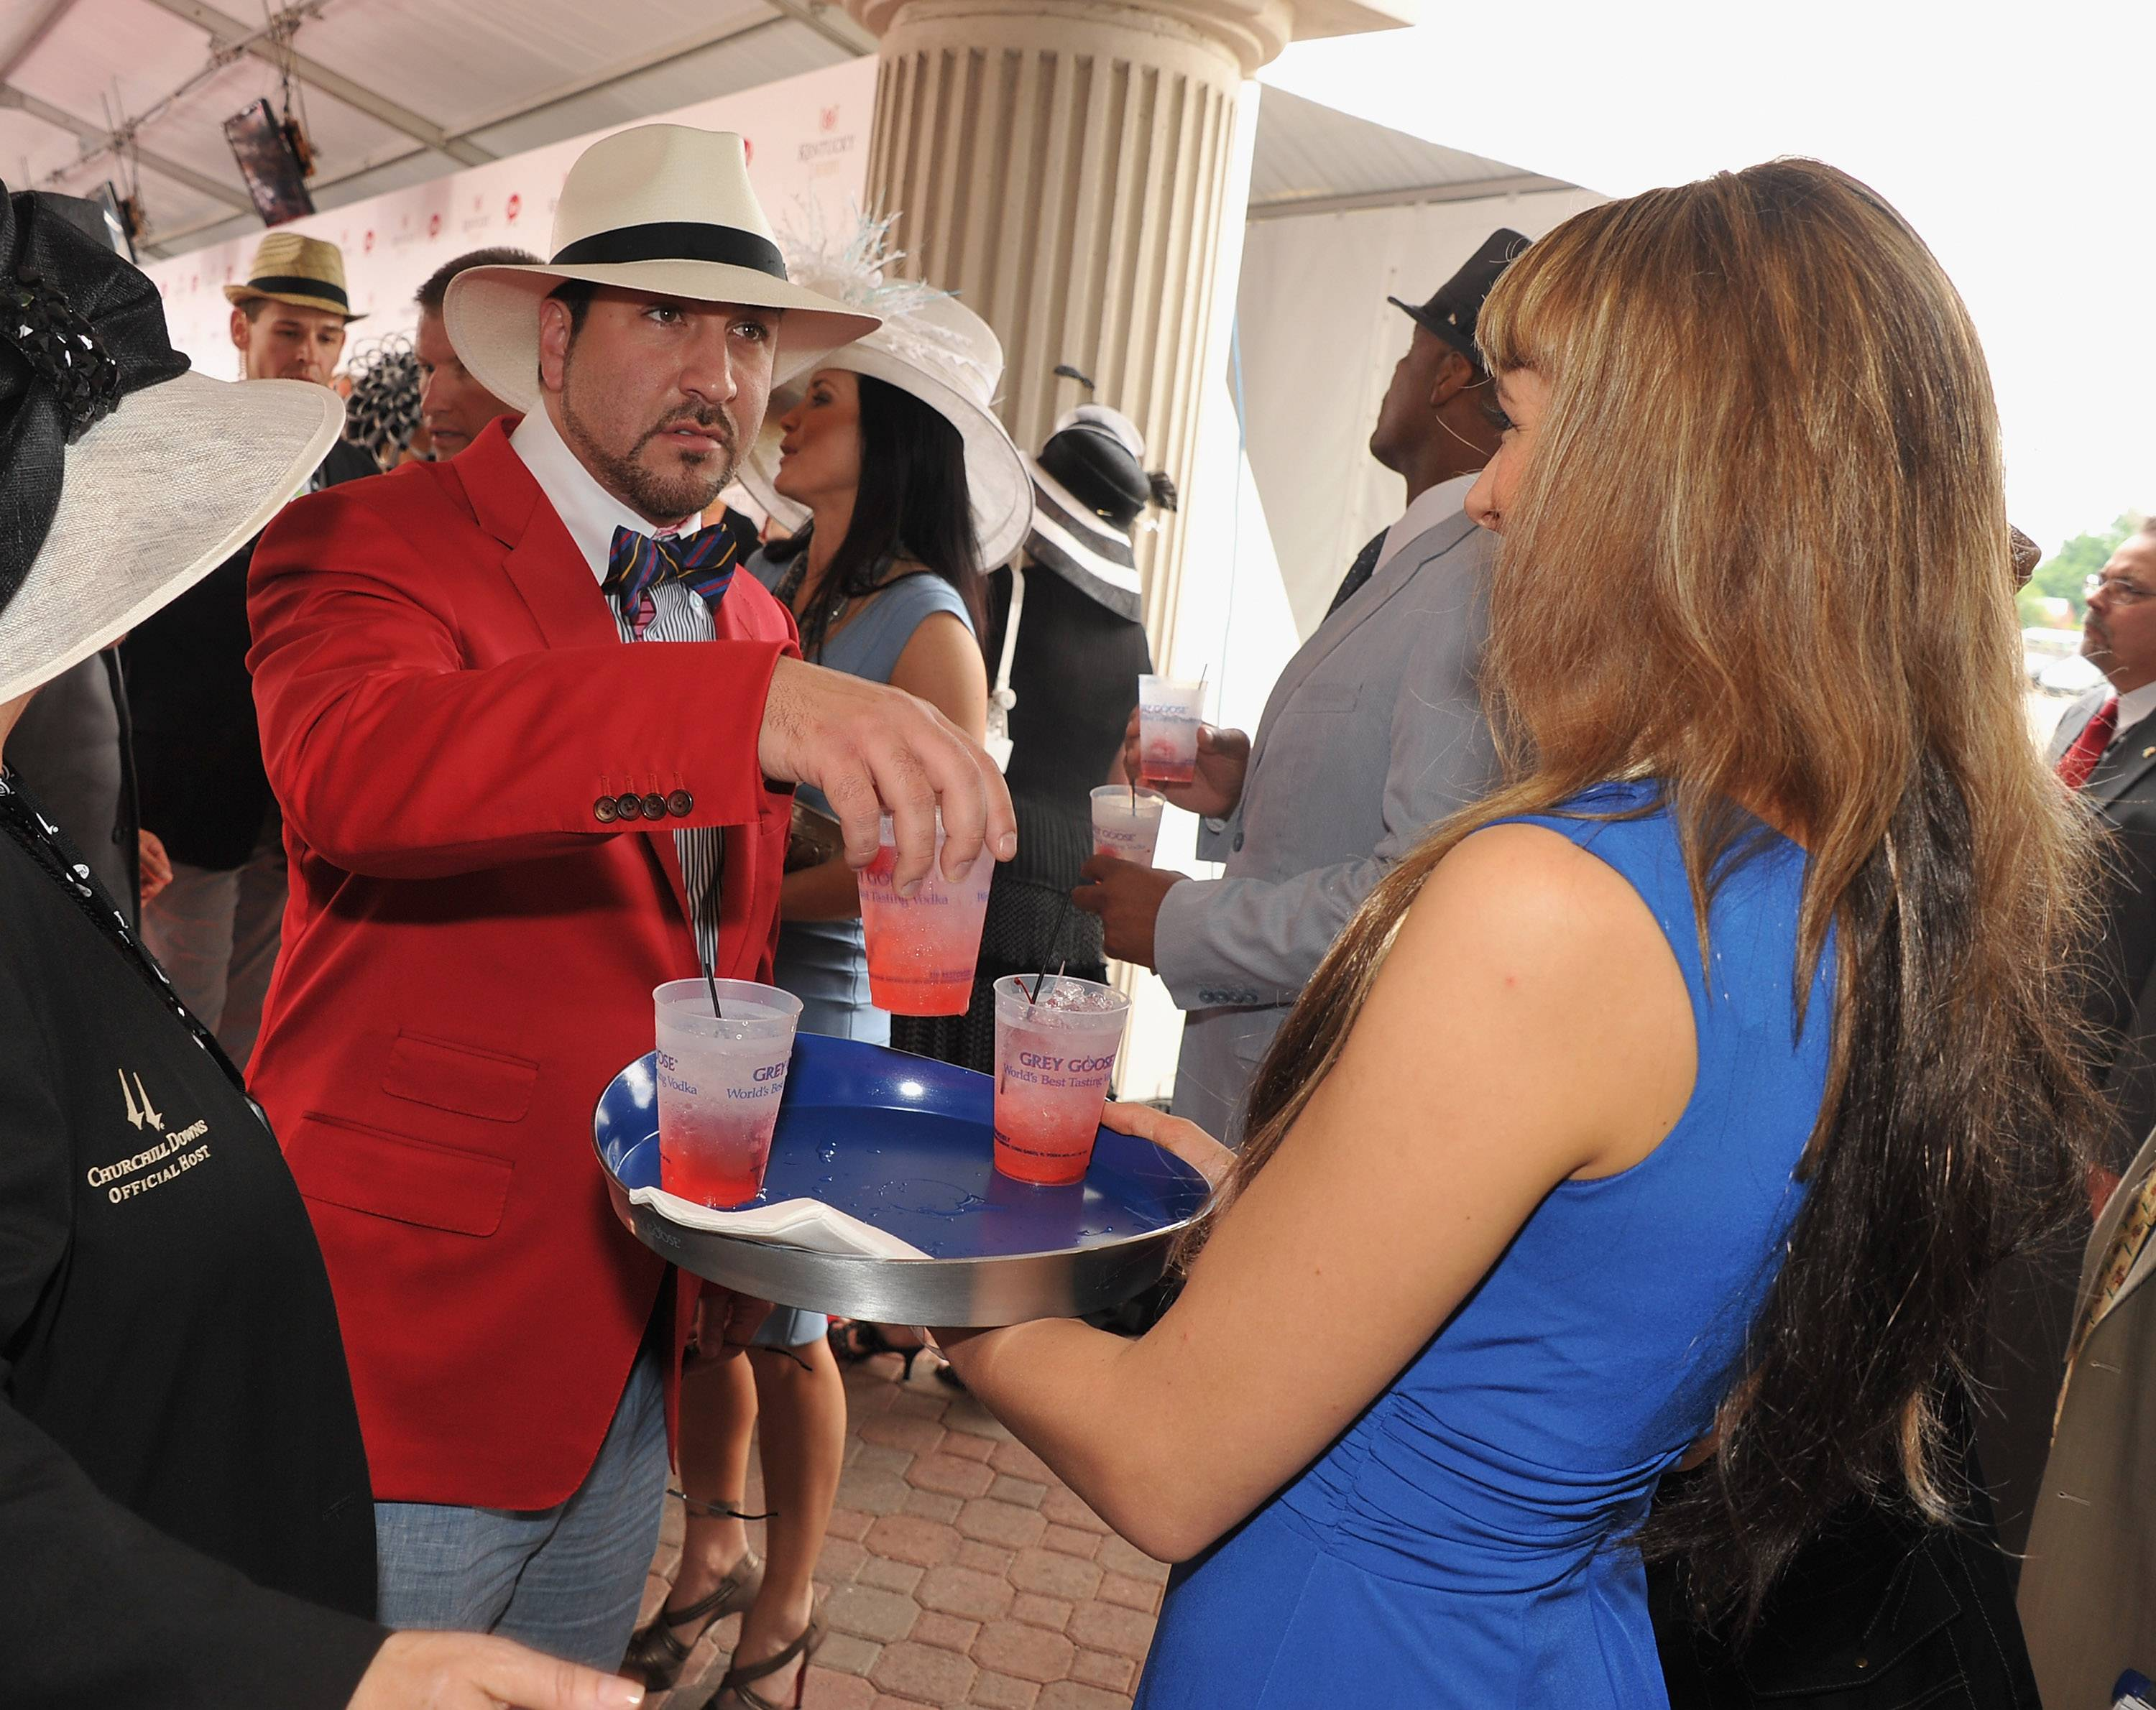 Joey Fatone  at the GREY GOOSE Vodka Lounge at the 138th Running of the Kentucky Derby.